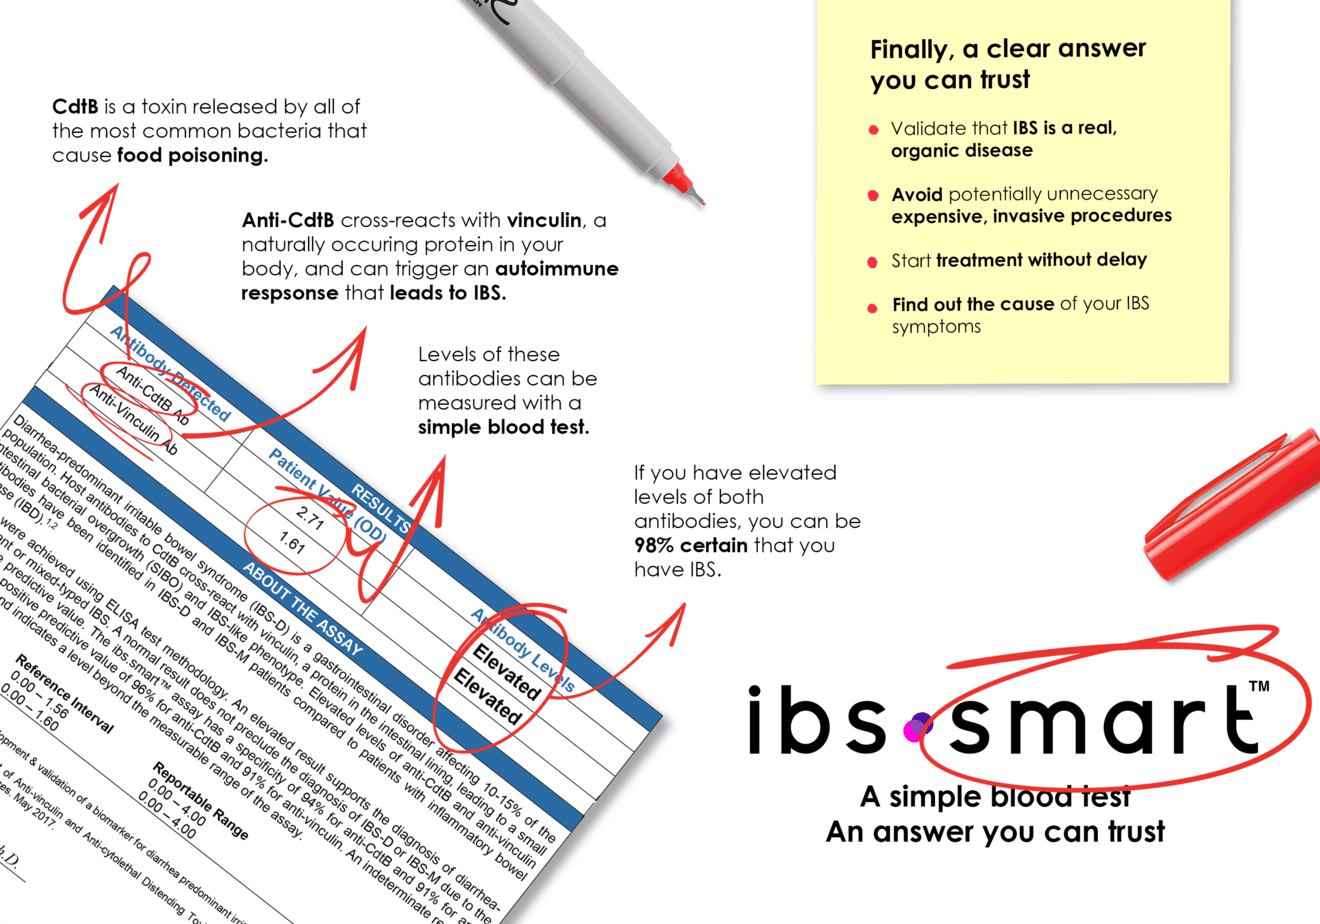 ibs-smart, diagnostic IBS test